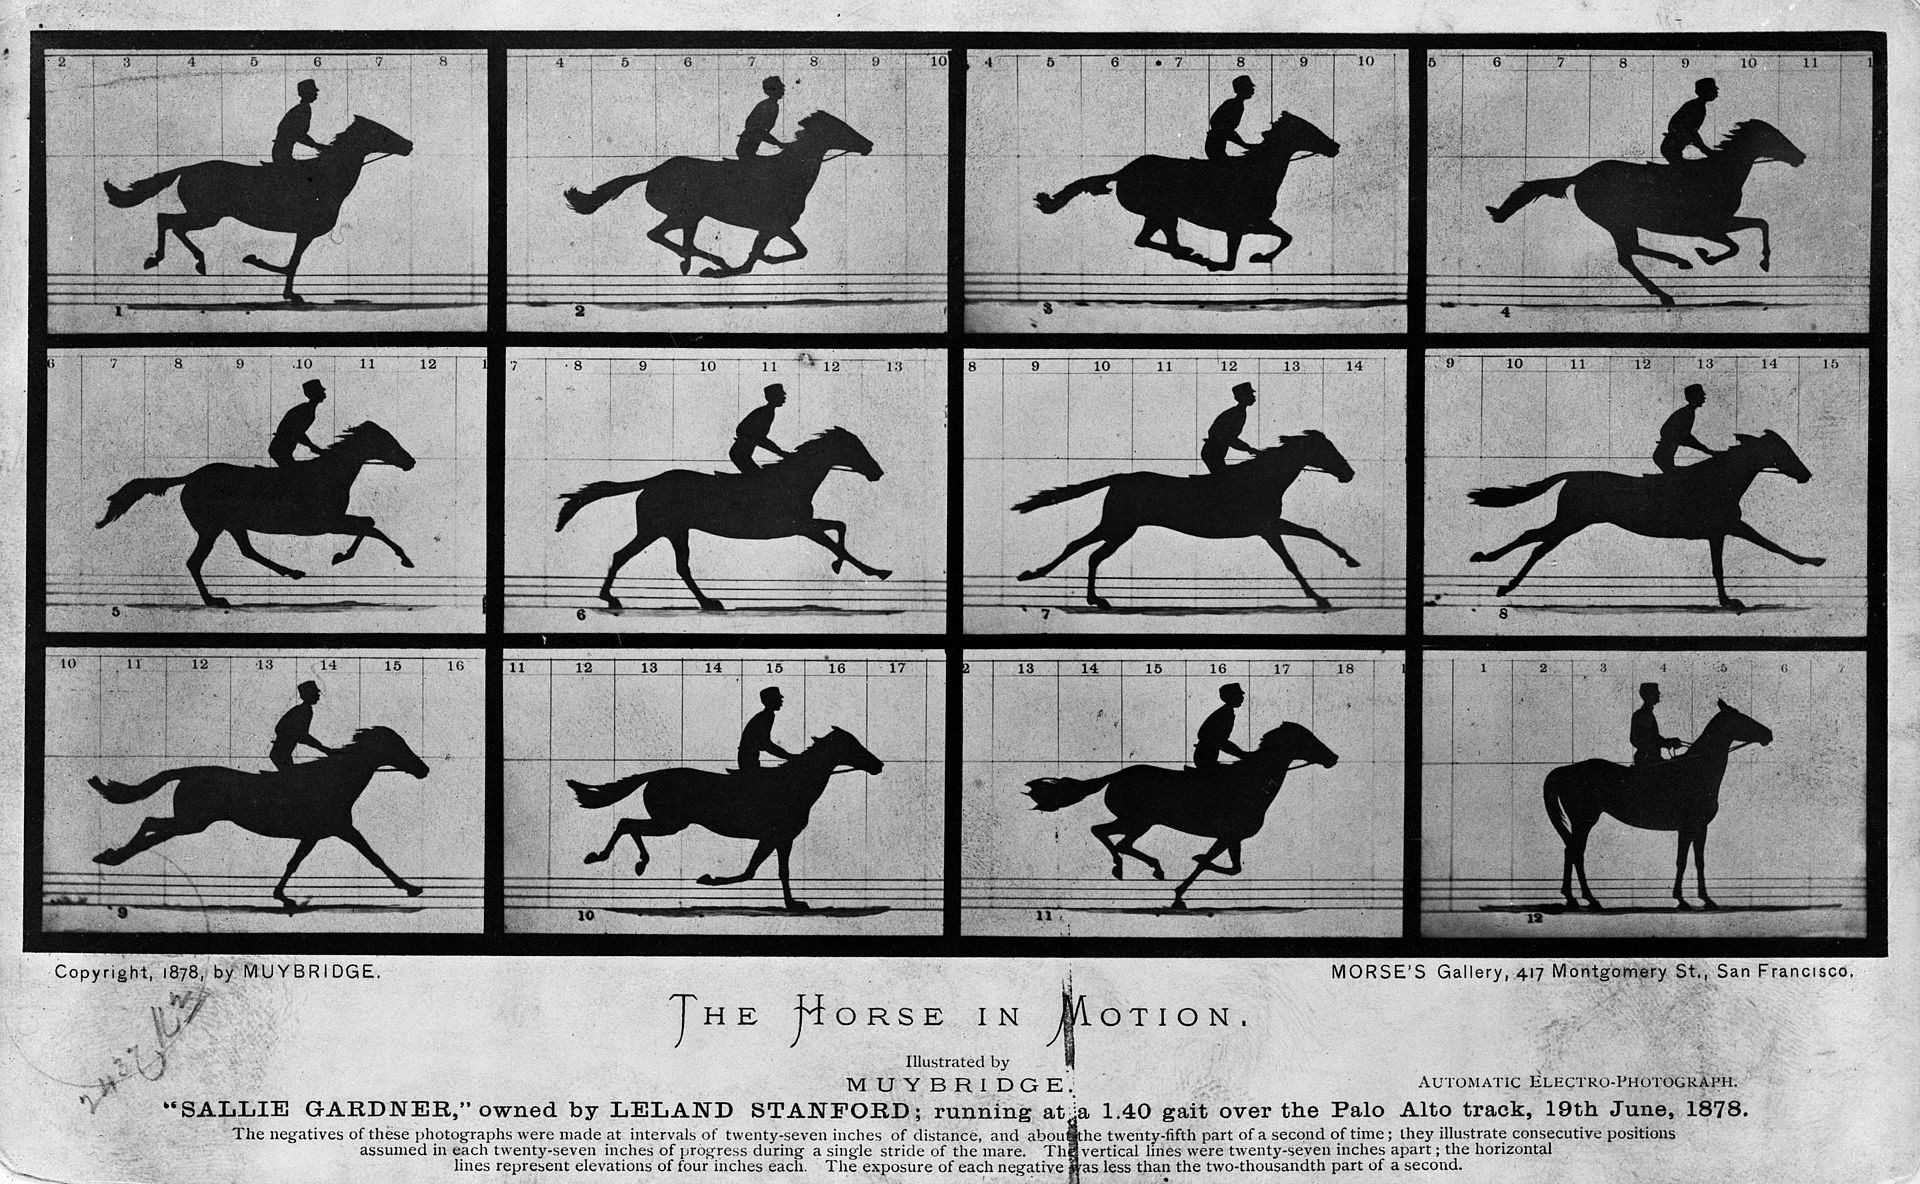 The_Horse_in_Motion_high_res.jpg